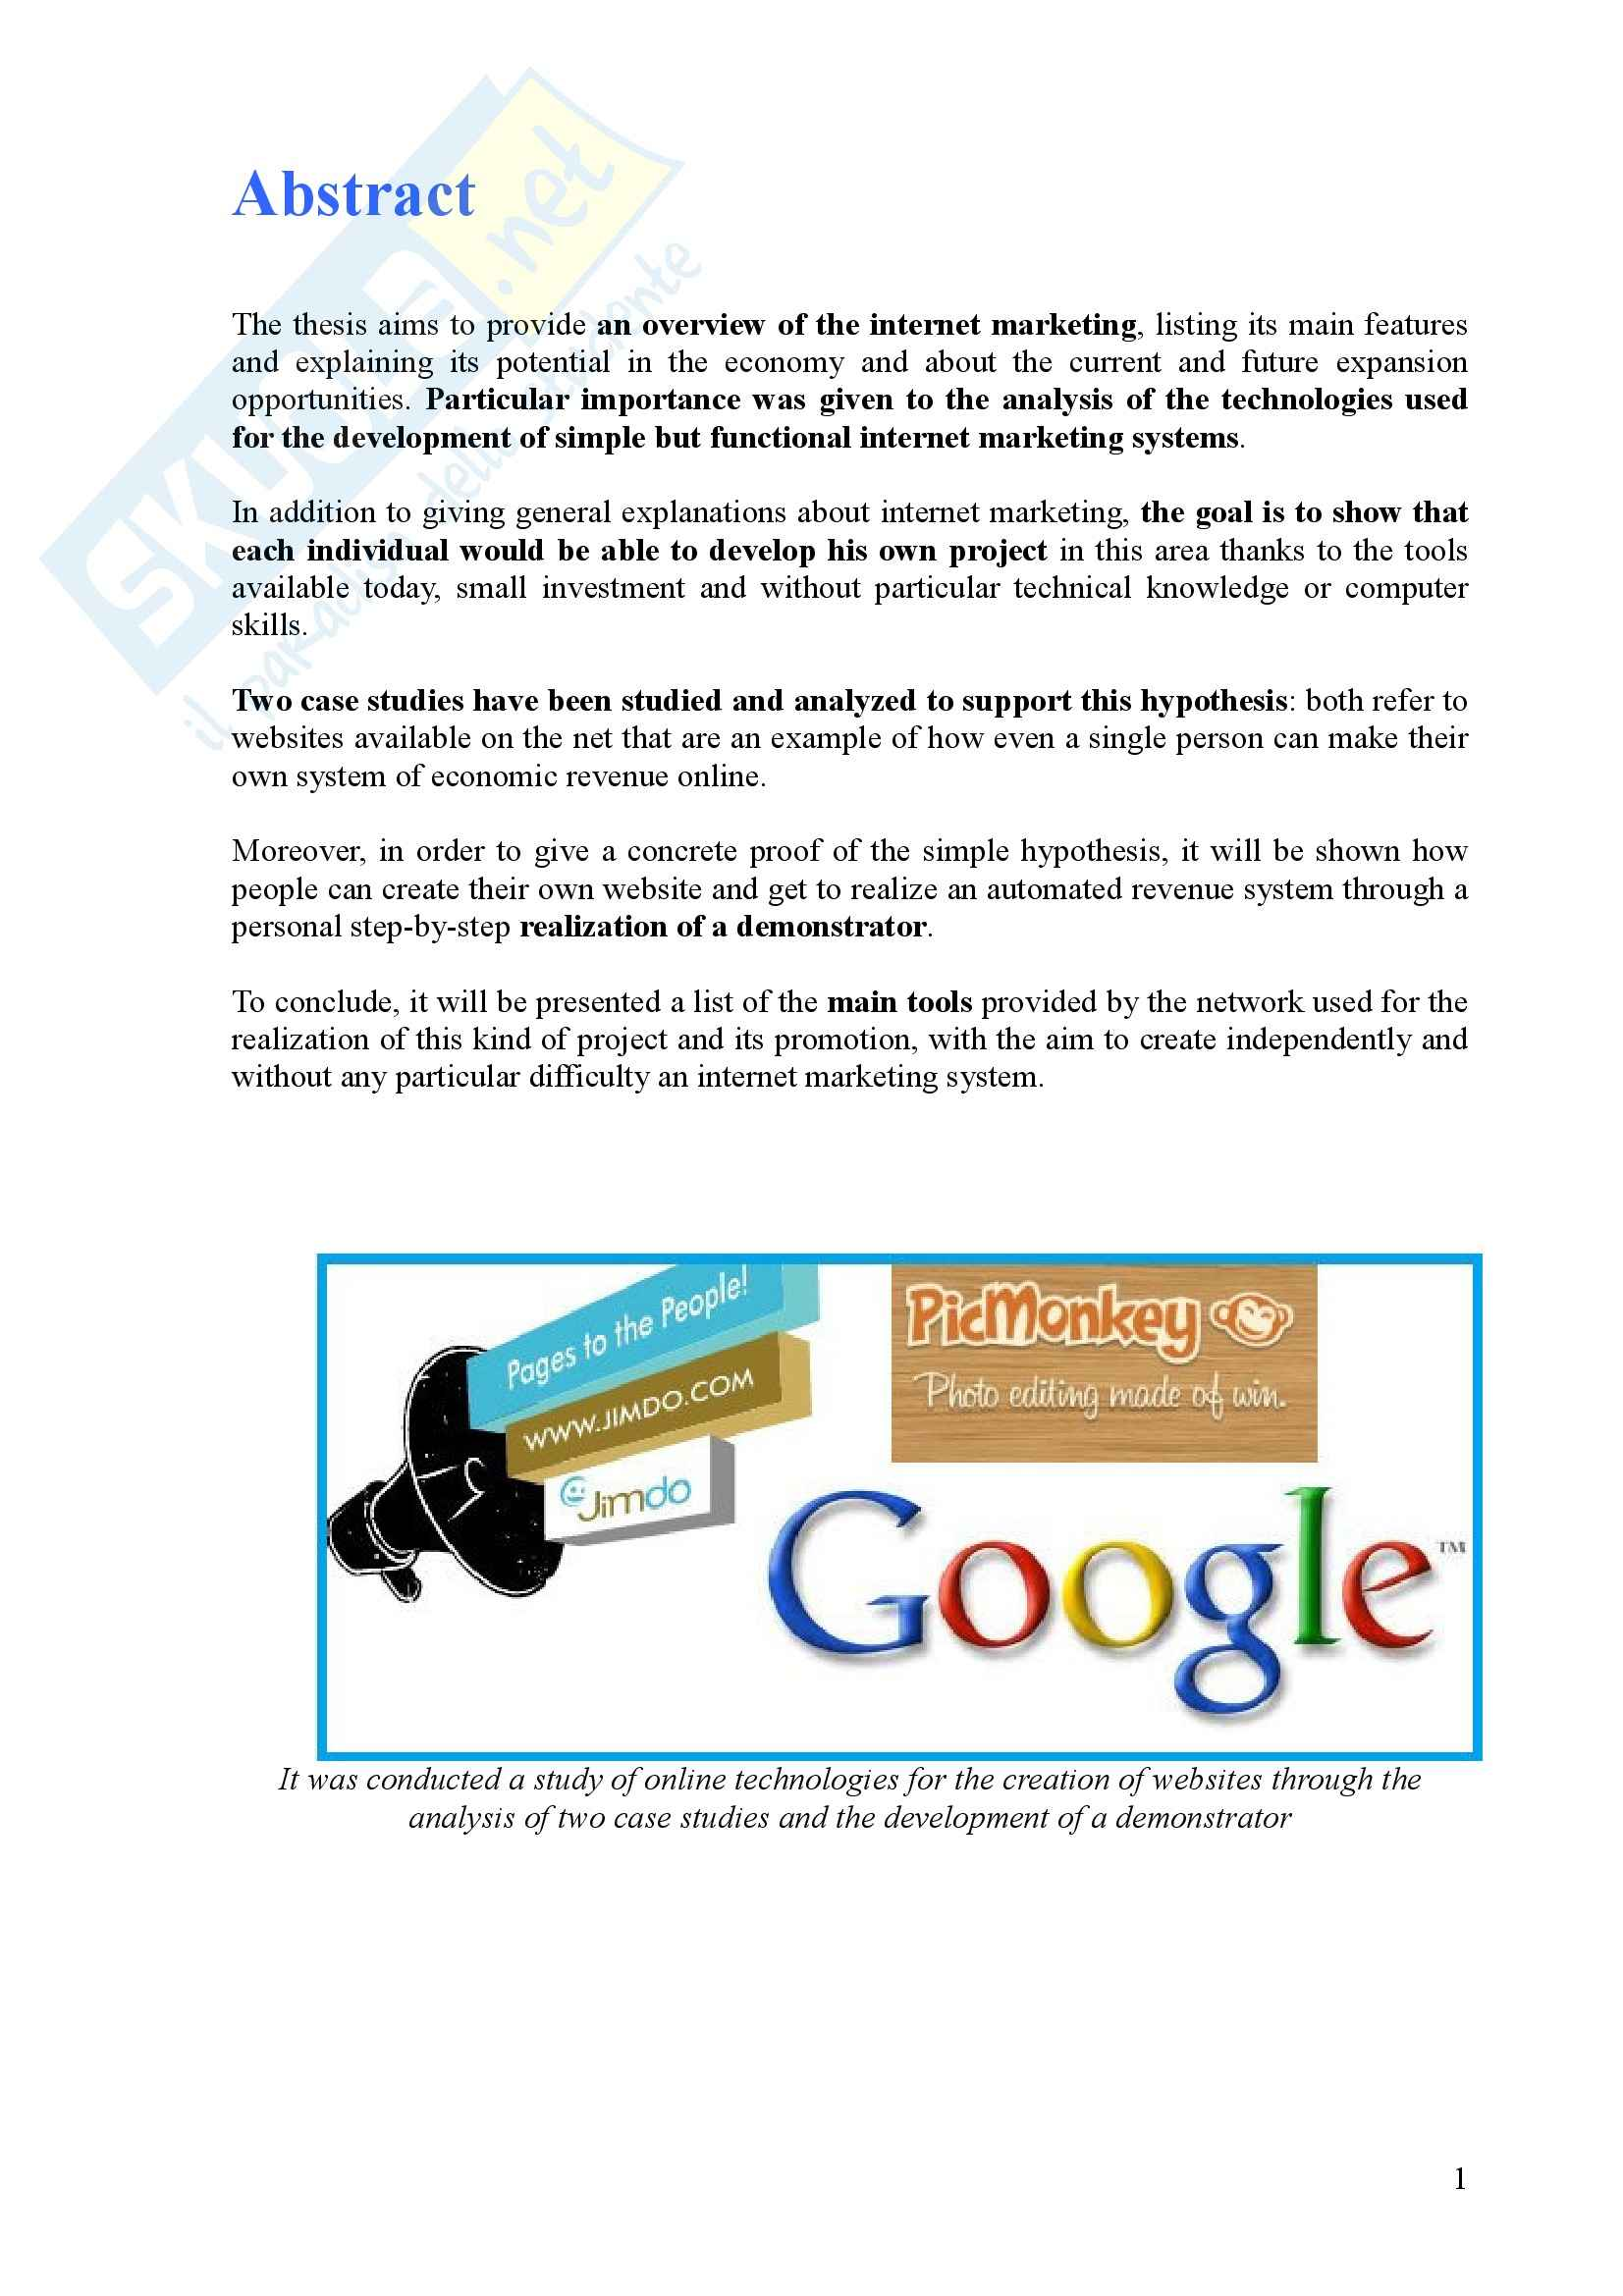 Tesi - Come realizzare entrate economiche grazie ad internet - internet marketing opportunities for individuals - Pag. 11